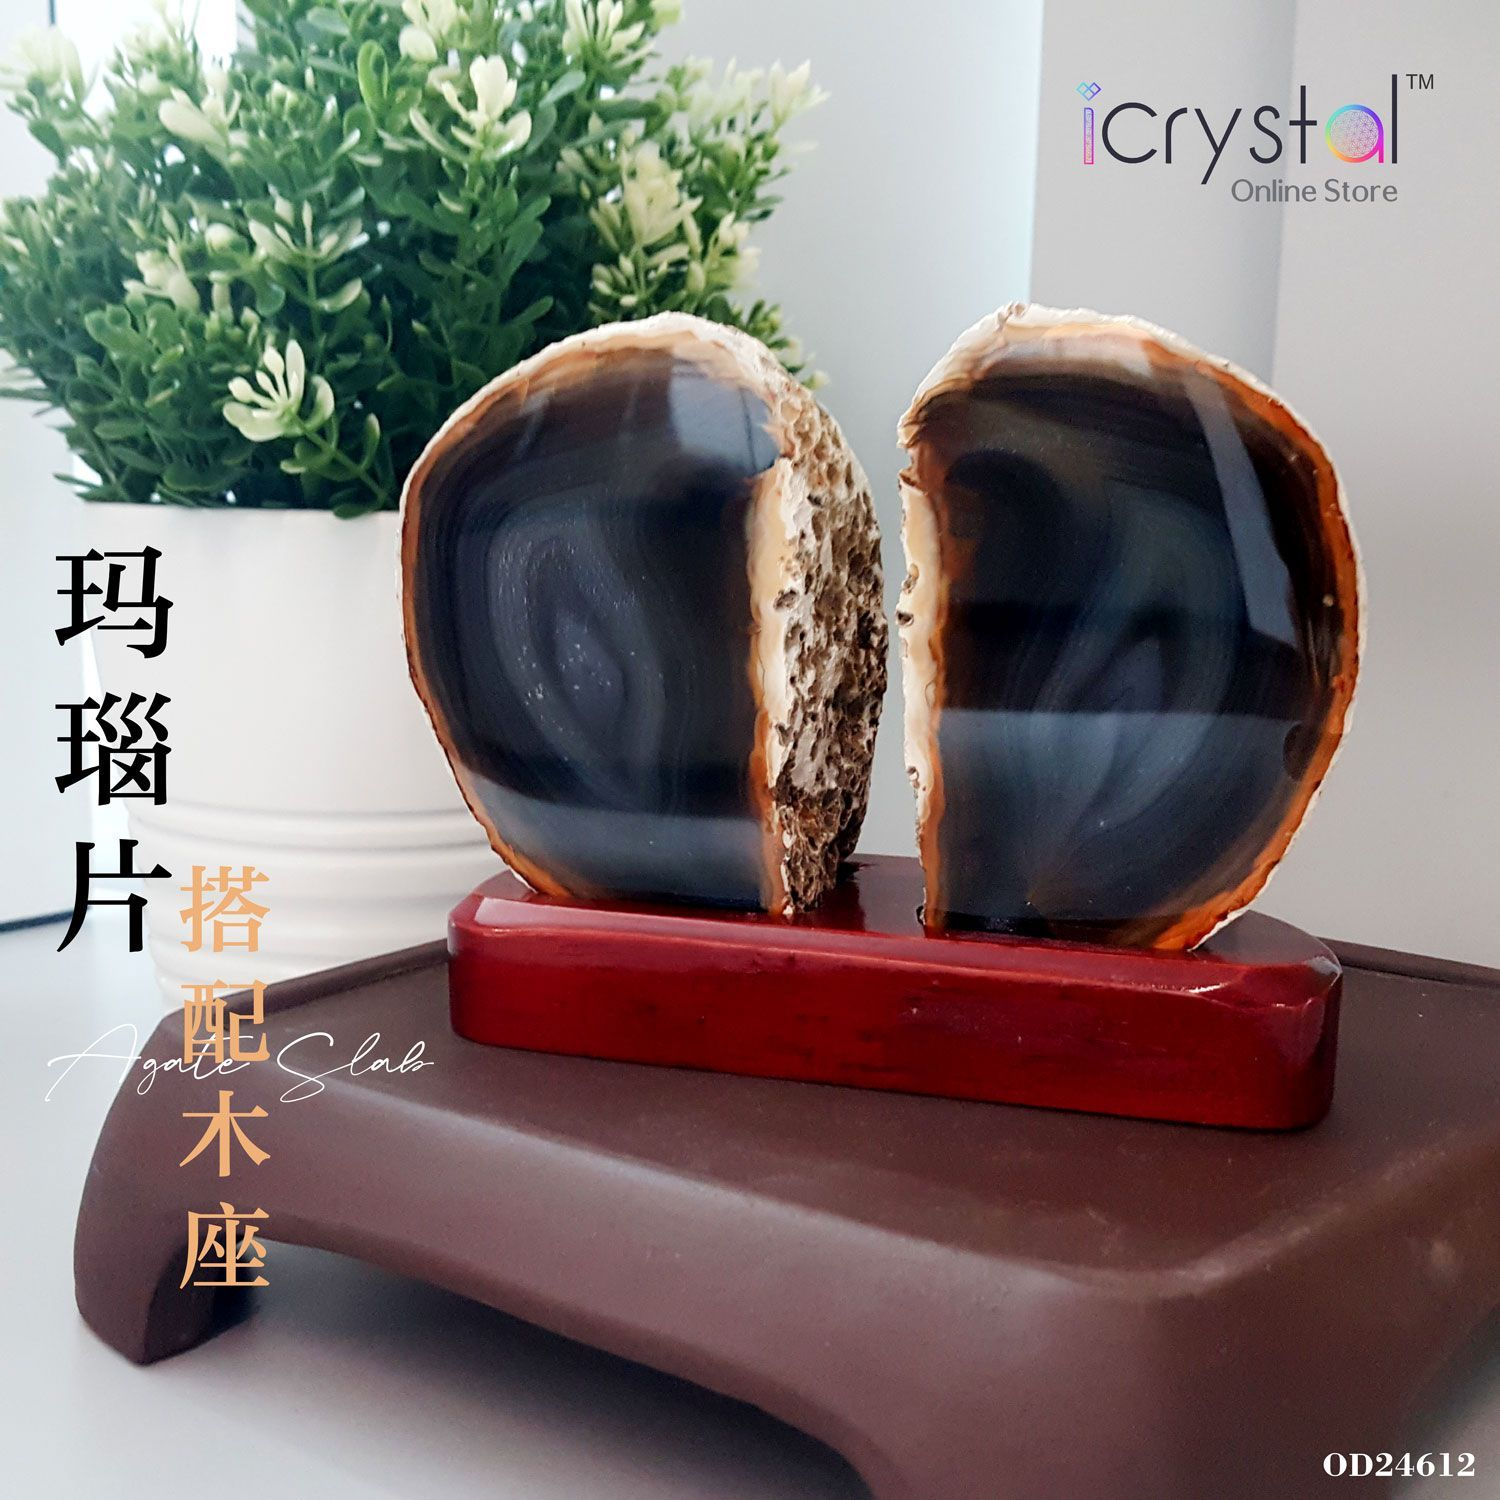 Agate Slab With Wood Stand Decoration